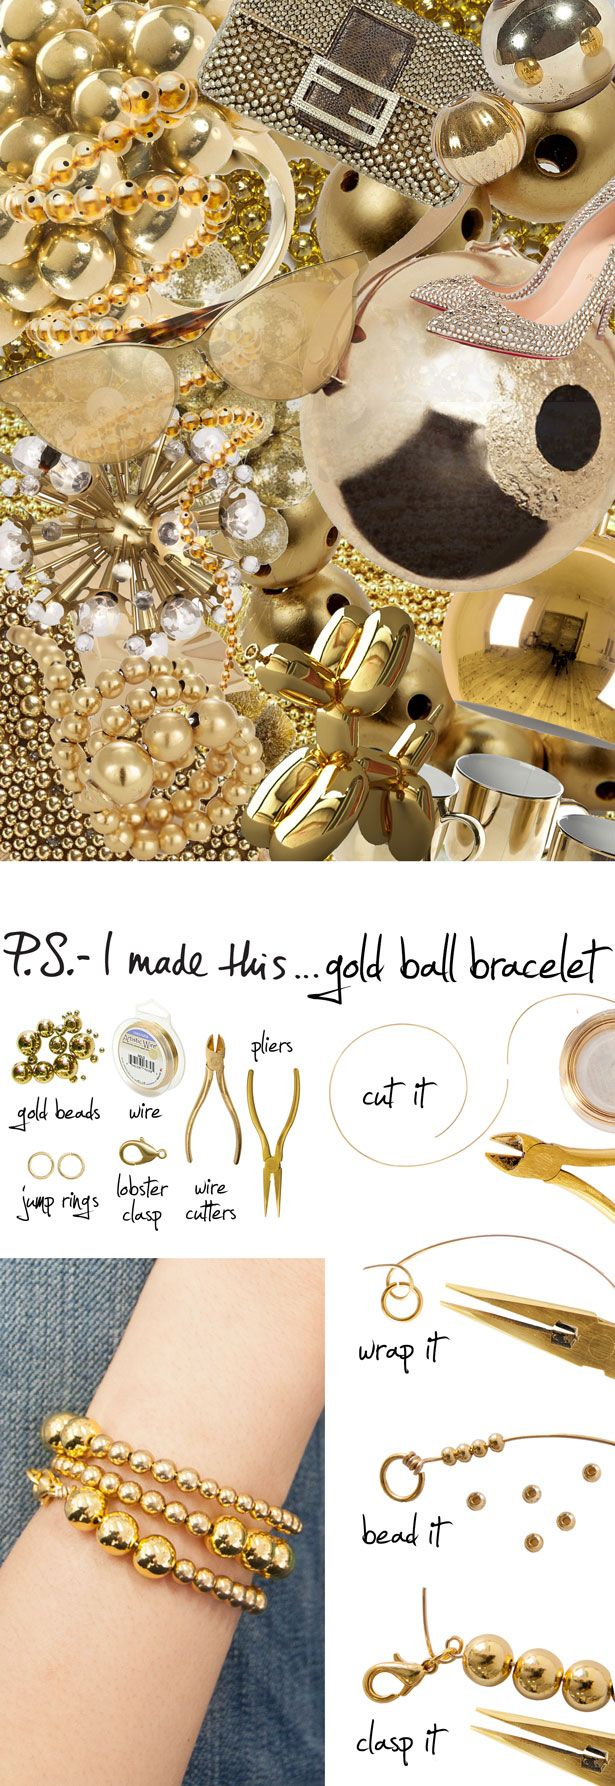 P.S.-I made this...Gold Ball Bracelet inspired by @Paula manc Mendoza #PSIMADETHIS #DIY